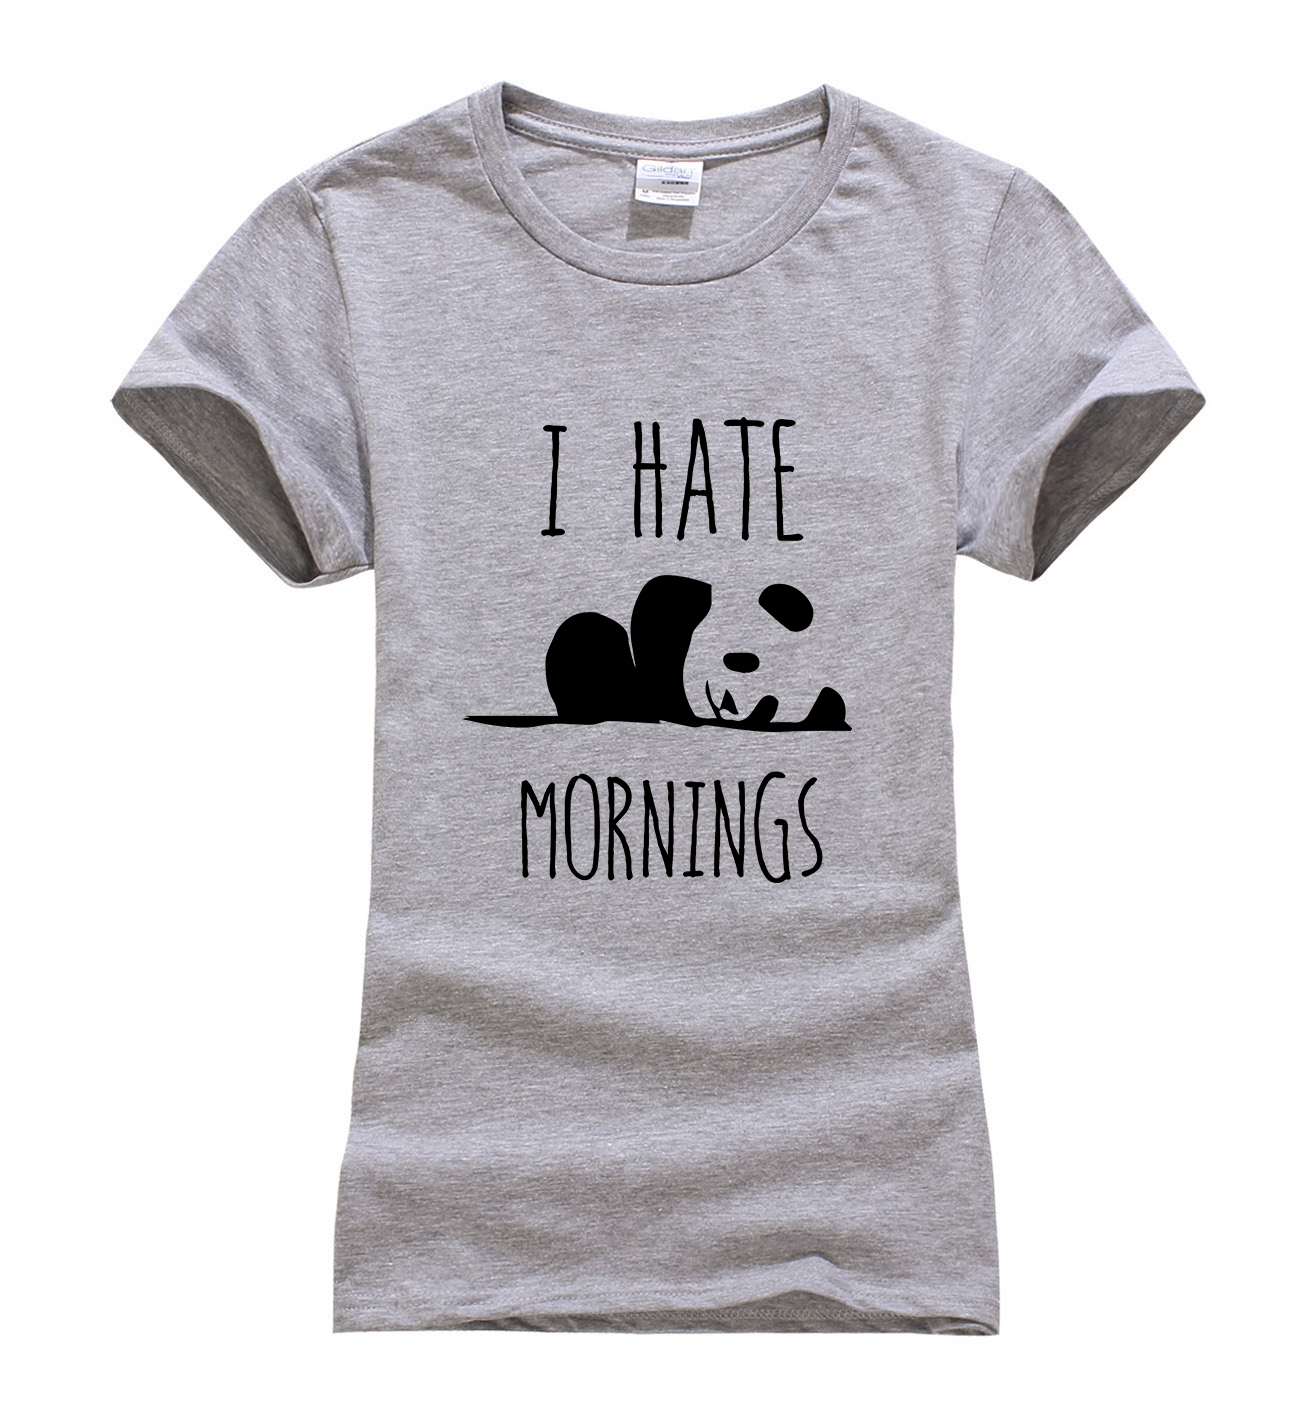 2018 summer i hate mornings cute panda print women t shirt